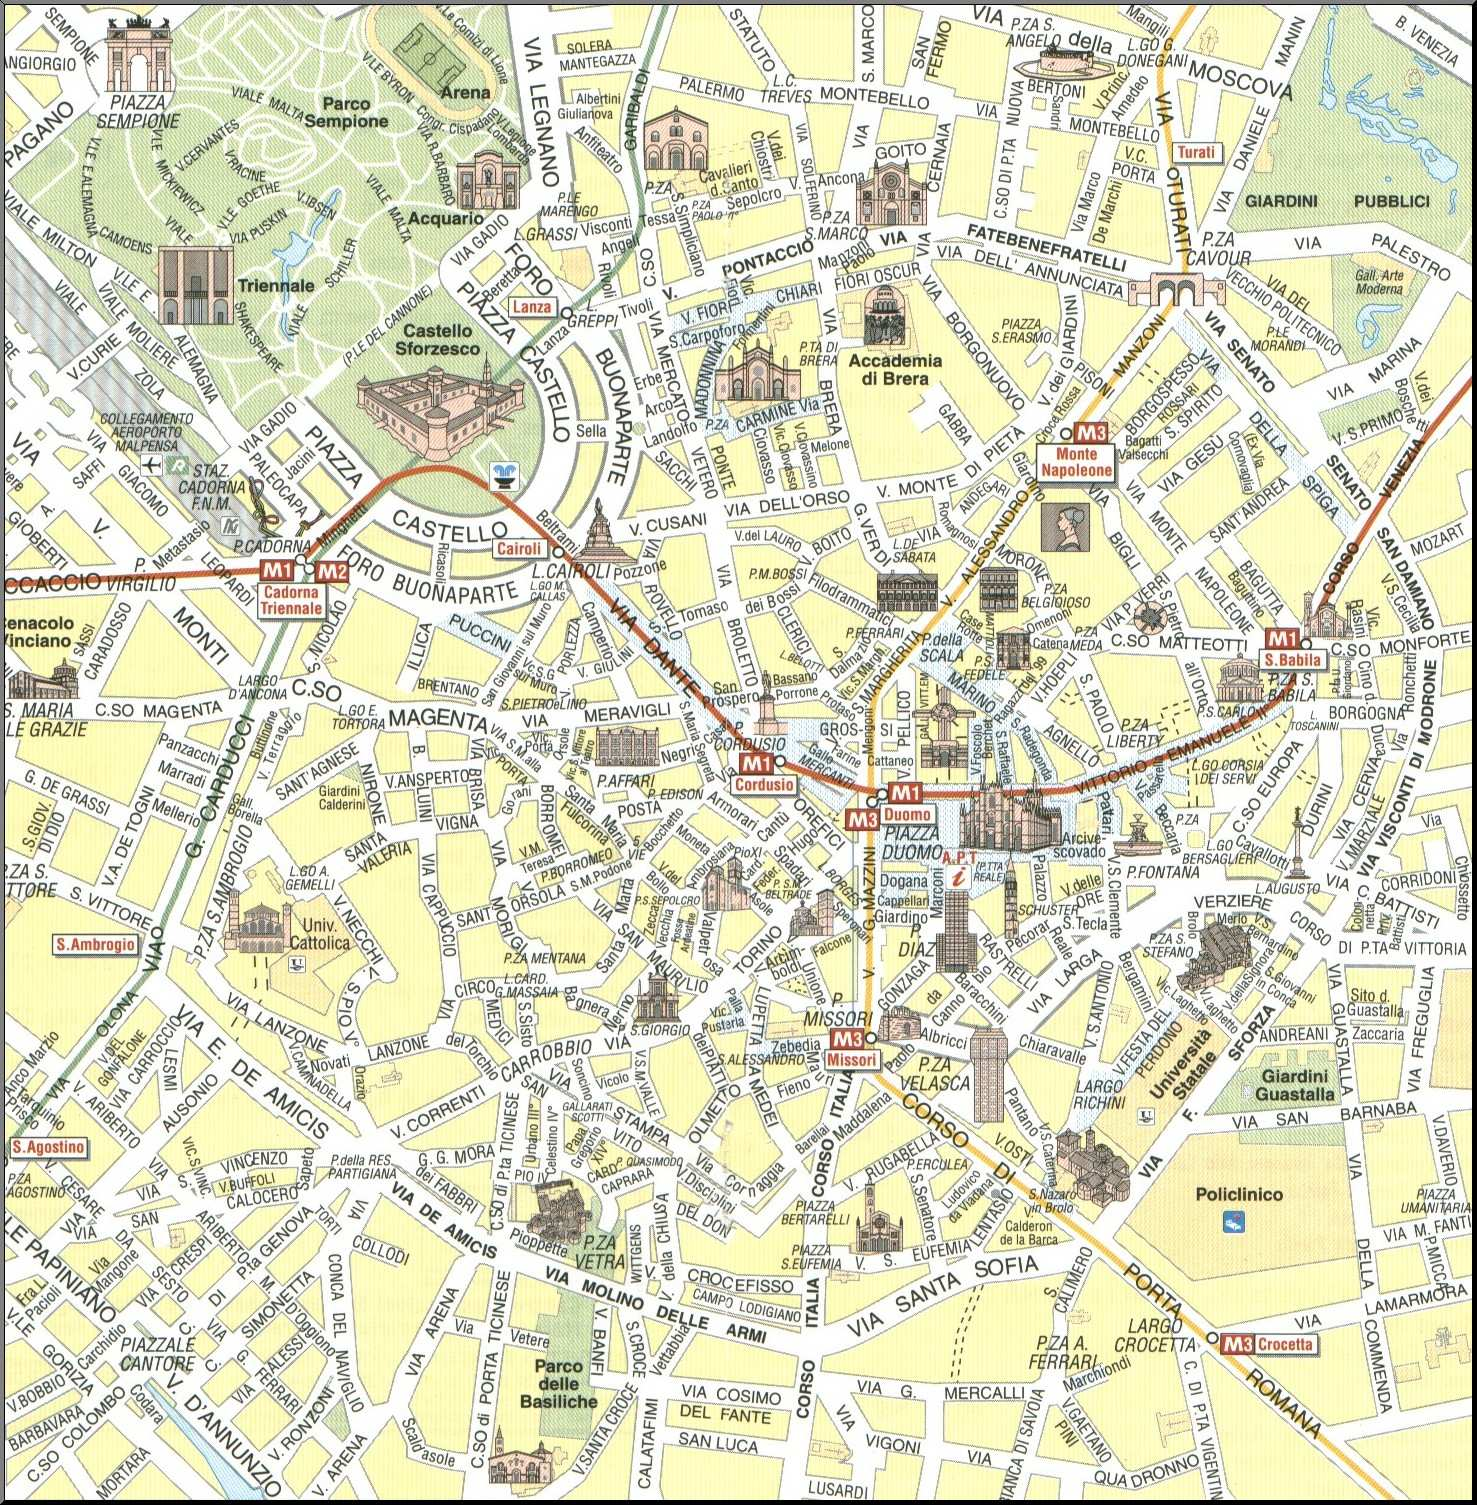 karta milano Large Milan Maps for Free Download and Print | High Resolution and  karta milano